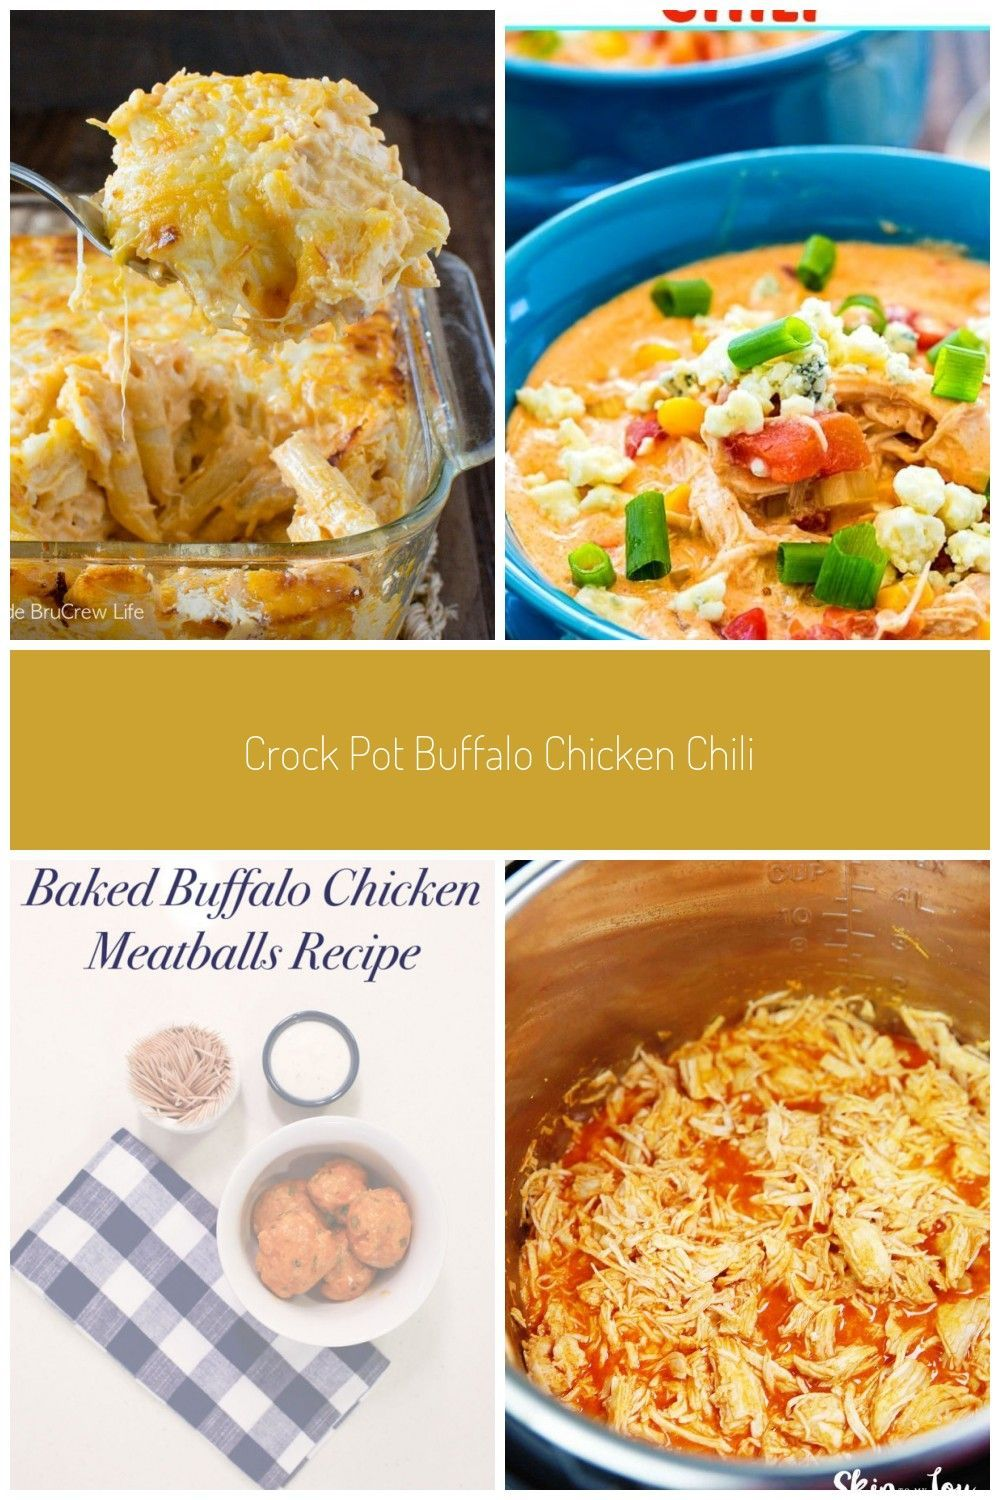 Buffalo Chicken Pasta Bake!  Enjoy your favorite buffalo chicken dip in a cheesy pasta casserole!  This recipe gets rave reviews from everyone that tries it. Make it for game day parties! #buffalo chicken #buffalochickennachos Buffalo Chicken Pasta Bake!  Enjoy your favorite buffalo chicken dip in a cheesy pasta casserole!  This recipe gets rave reviews from everyone that tries it. Make it for game day parties! #buffalo chicken #buffalochickennachos